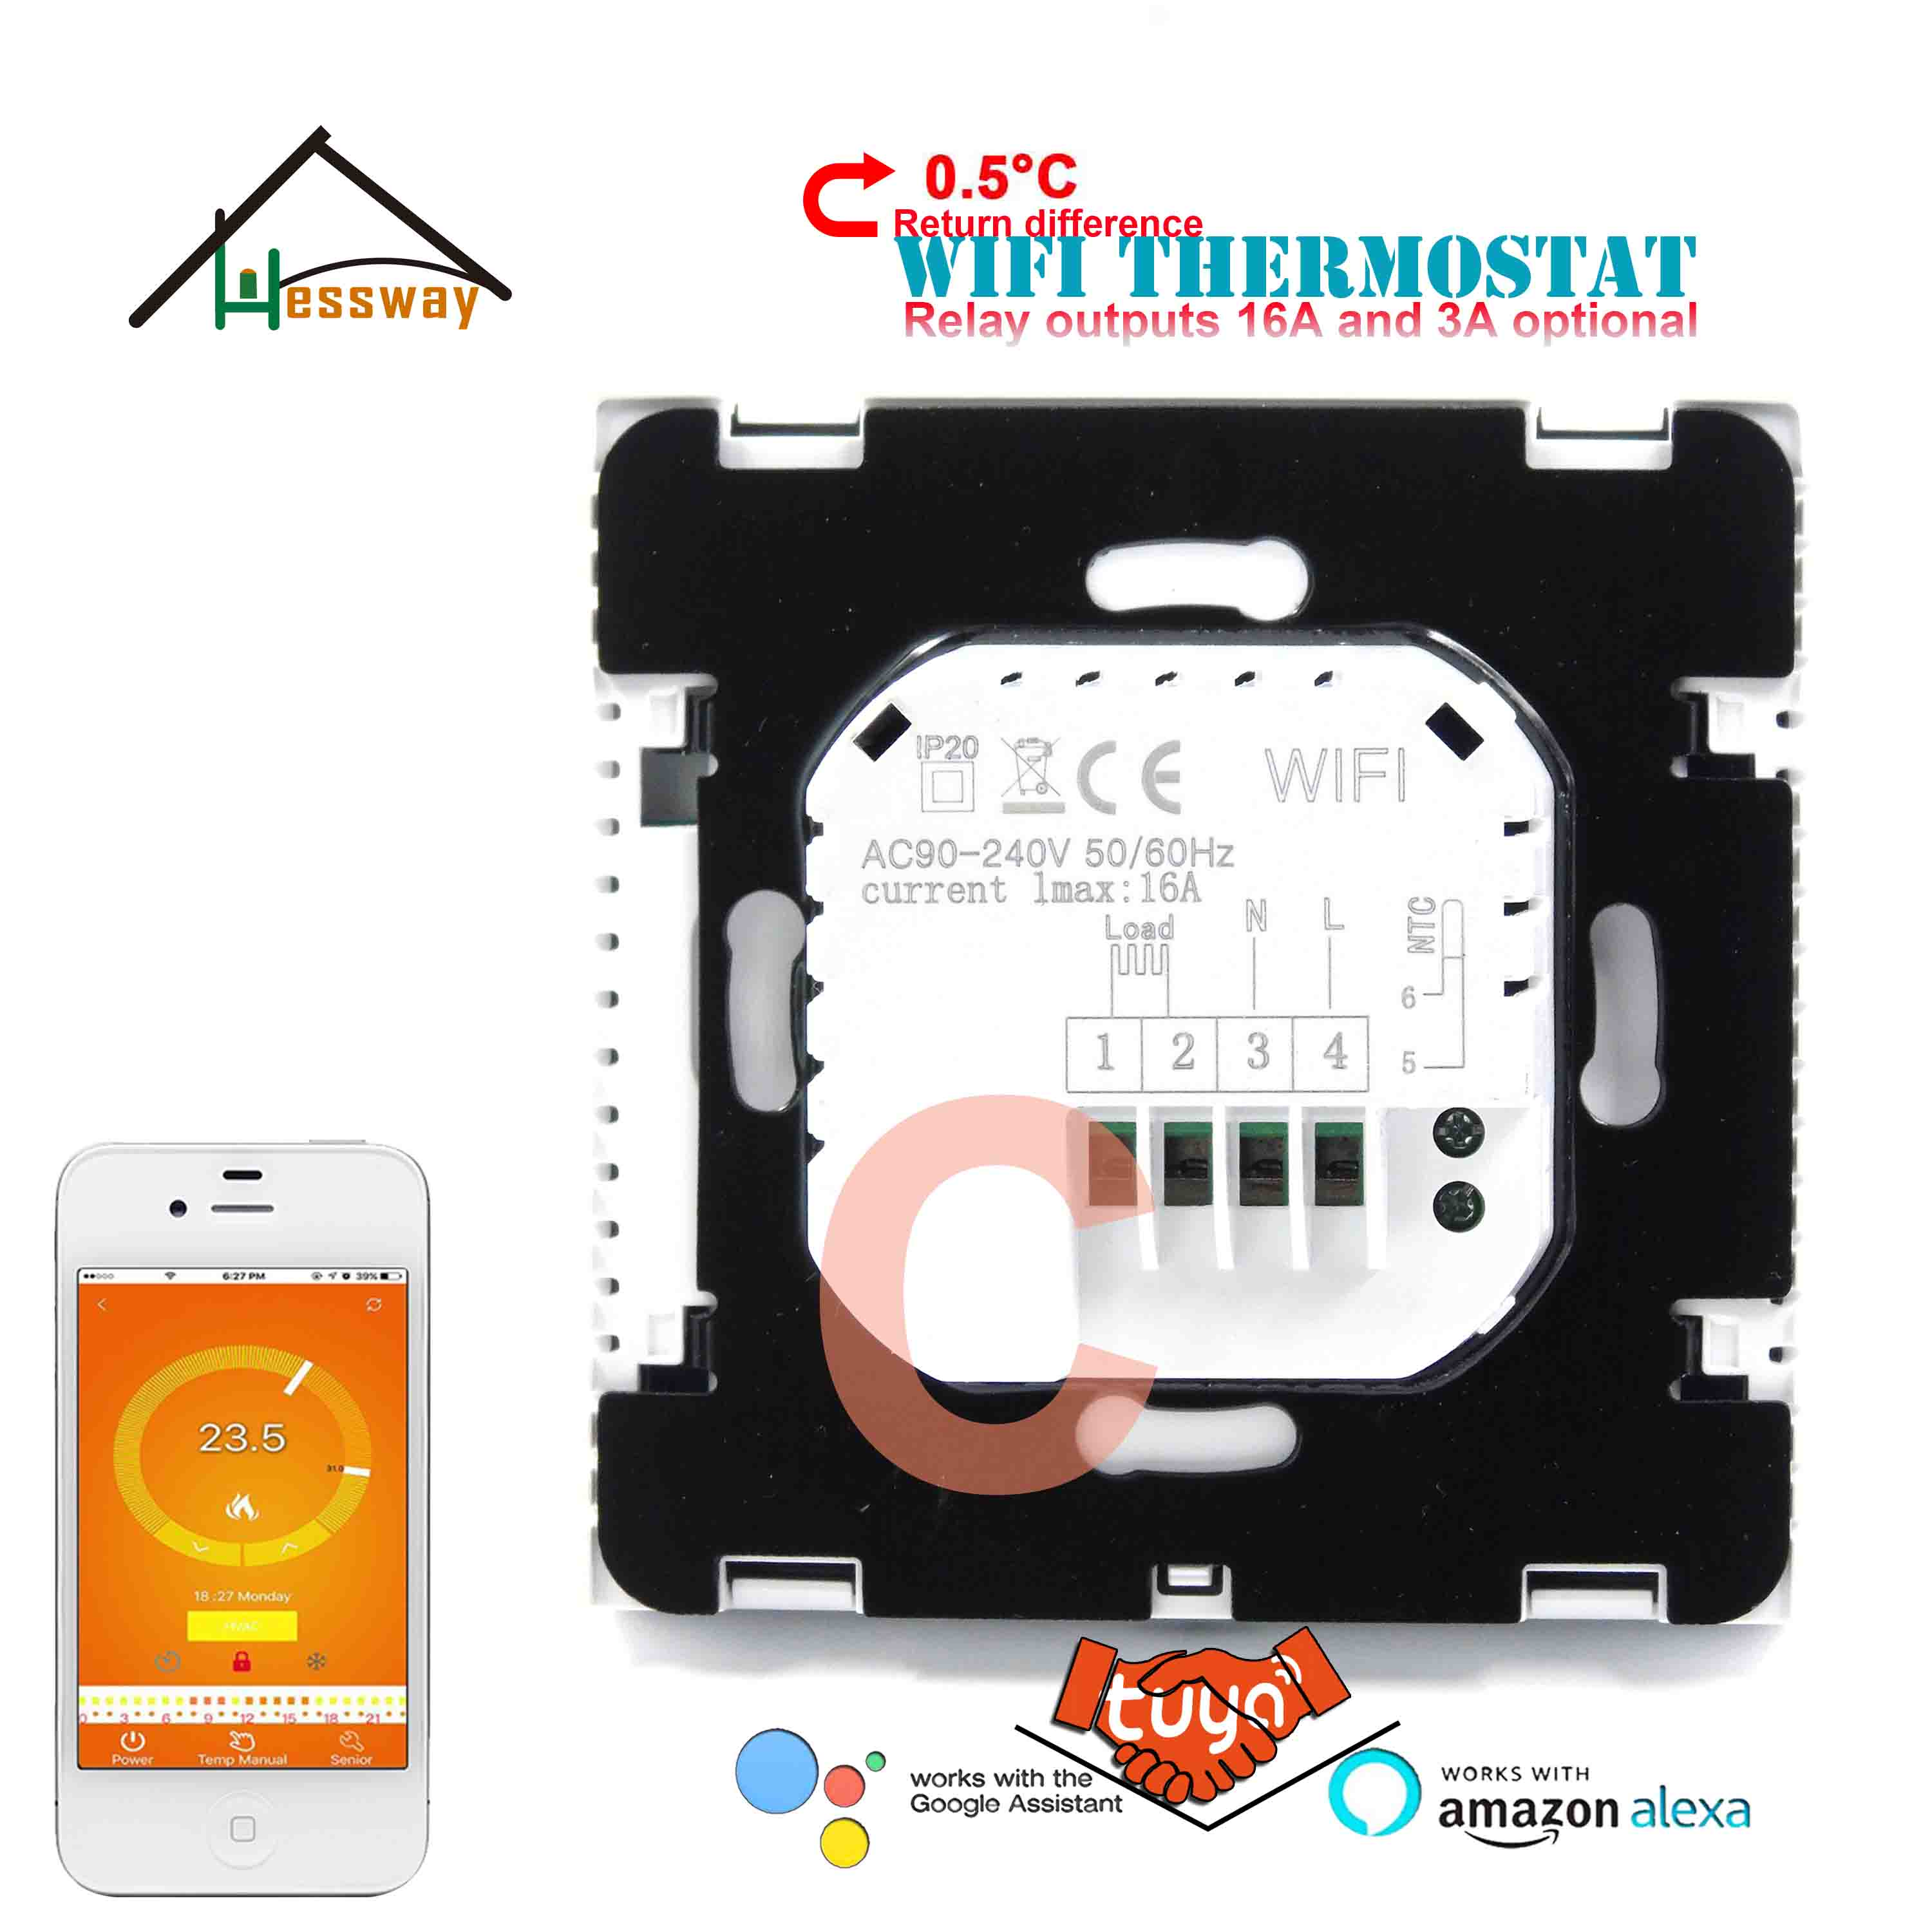 HESSWAY Thermoregulator Touch Screen Heating Thermostat WiFi for Boiler Water Heating 3A 16A